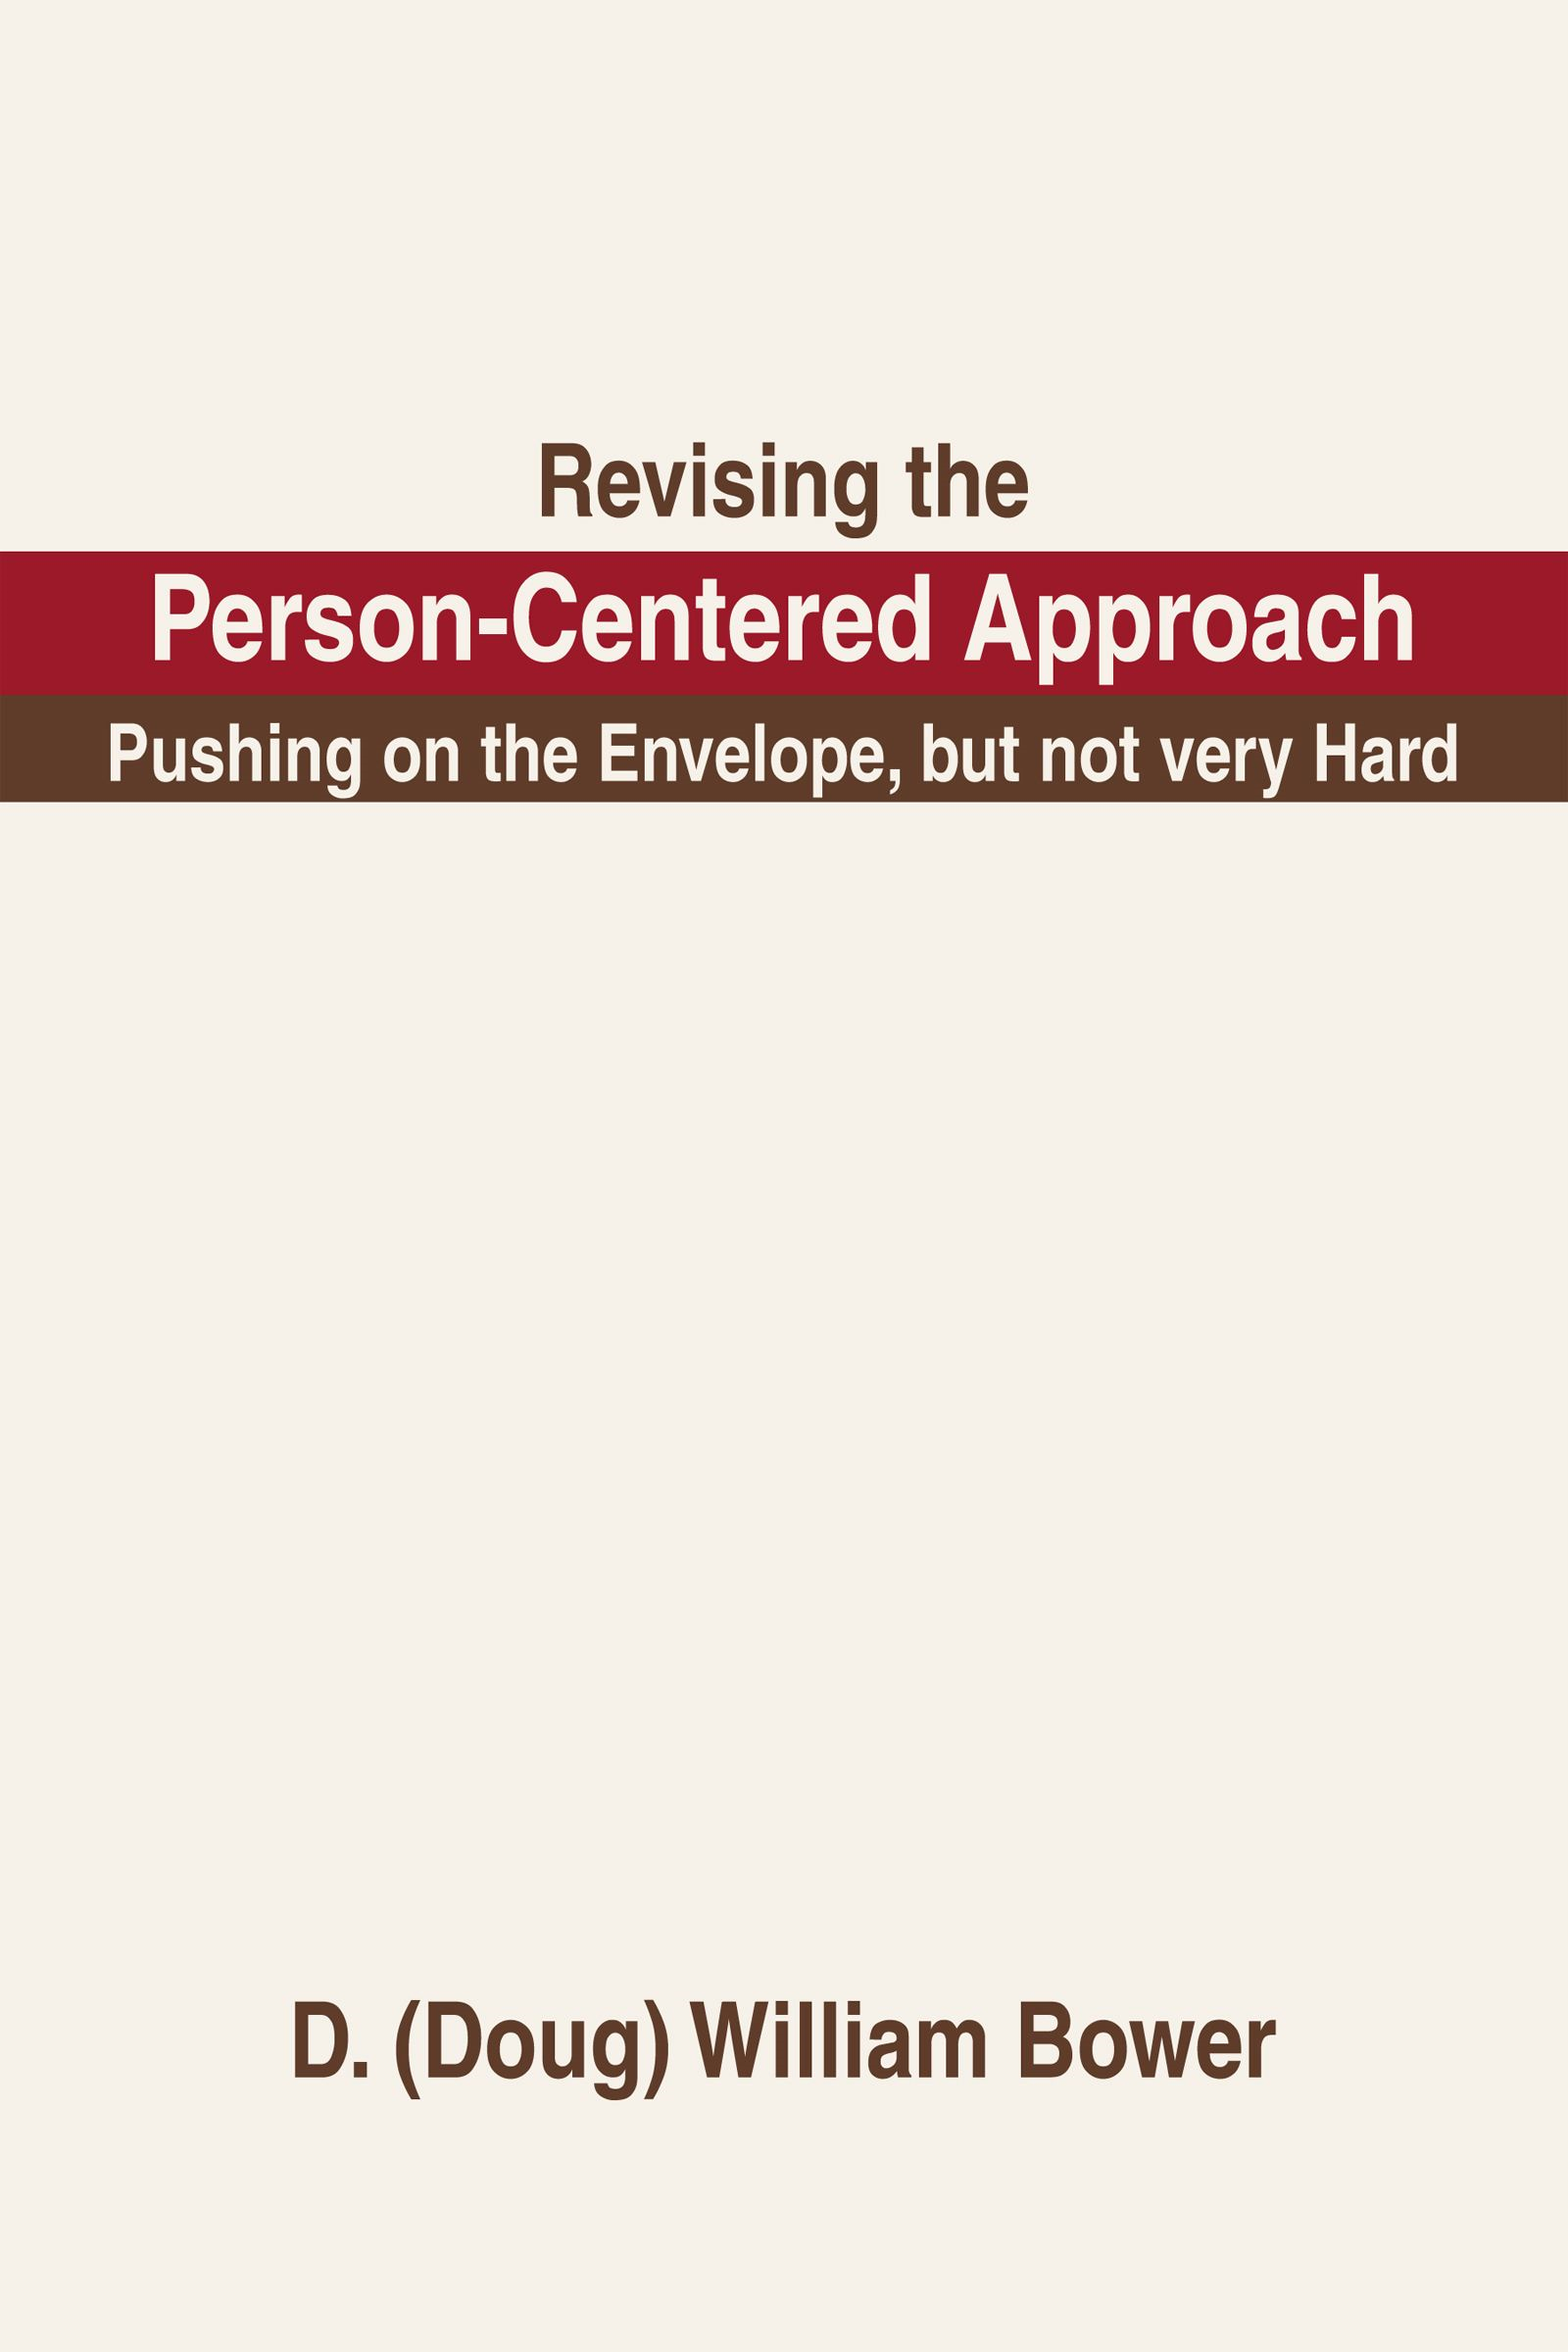 Revising the Person-Centered Approach By: D. (Doug) William Bower